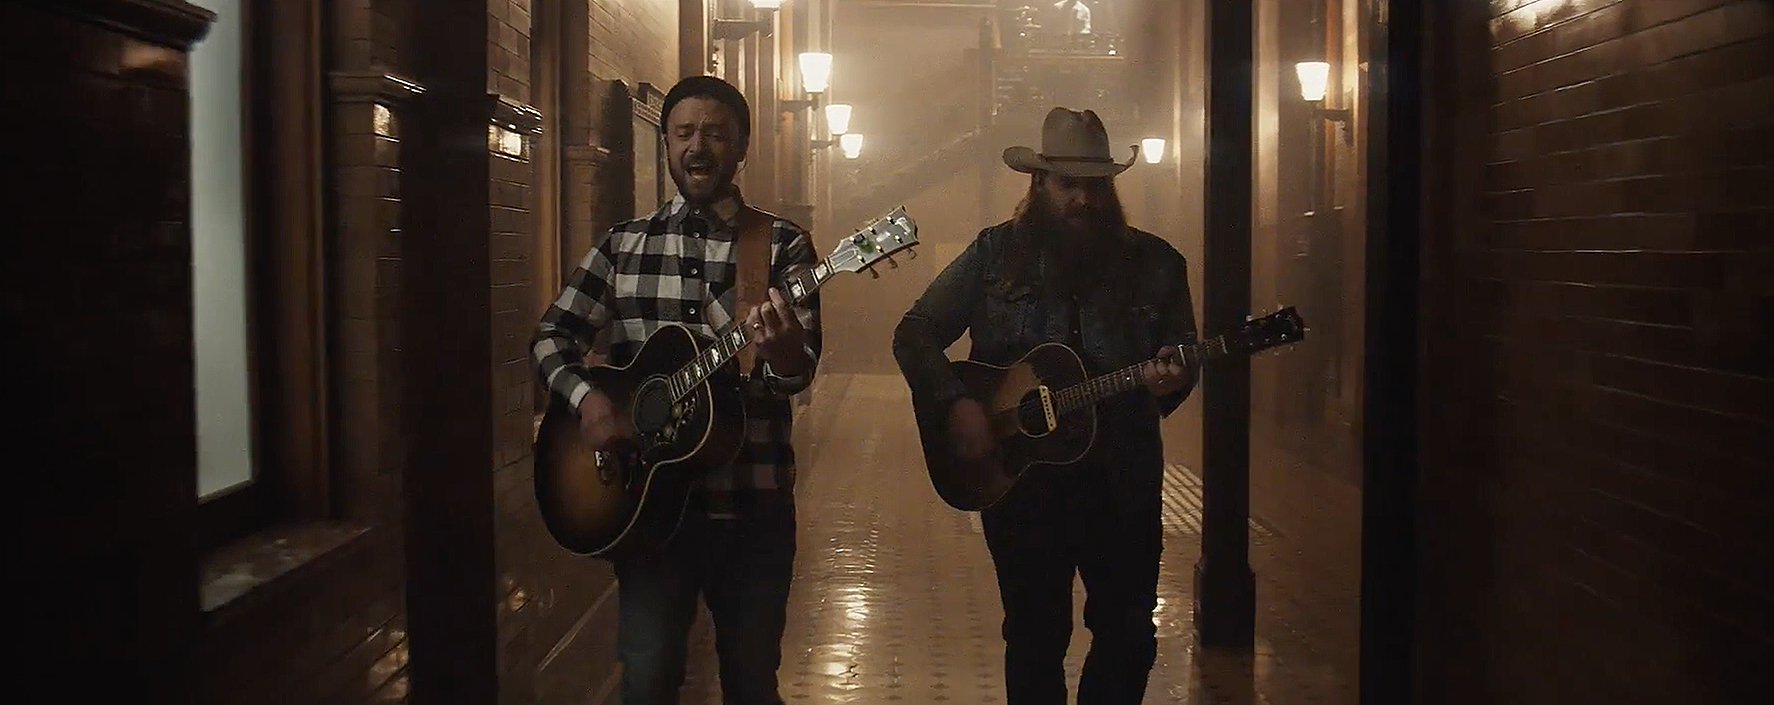 "Arturo Perez Jr. for Justin Timberlake's latest single ""Say Something ft. Chris Stapleton"""